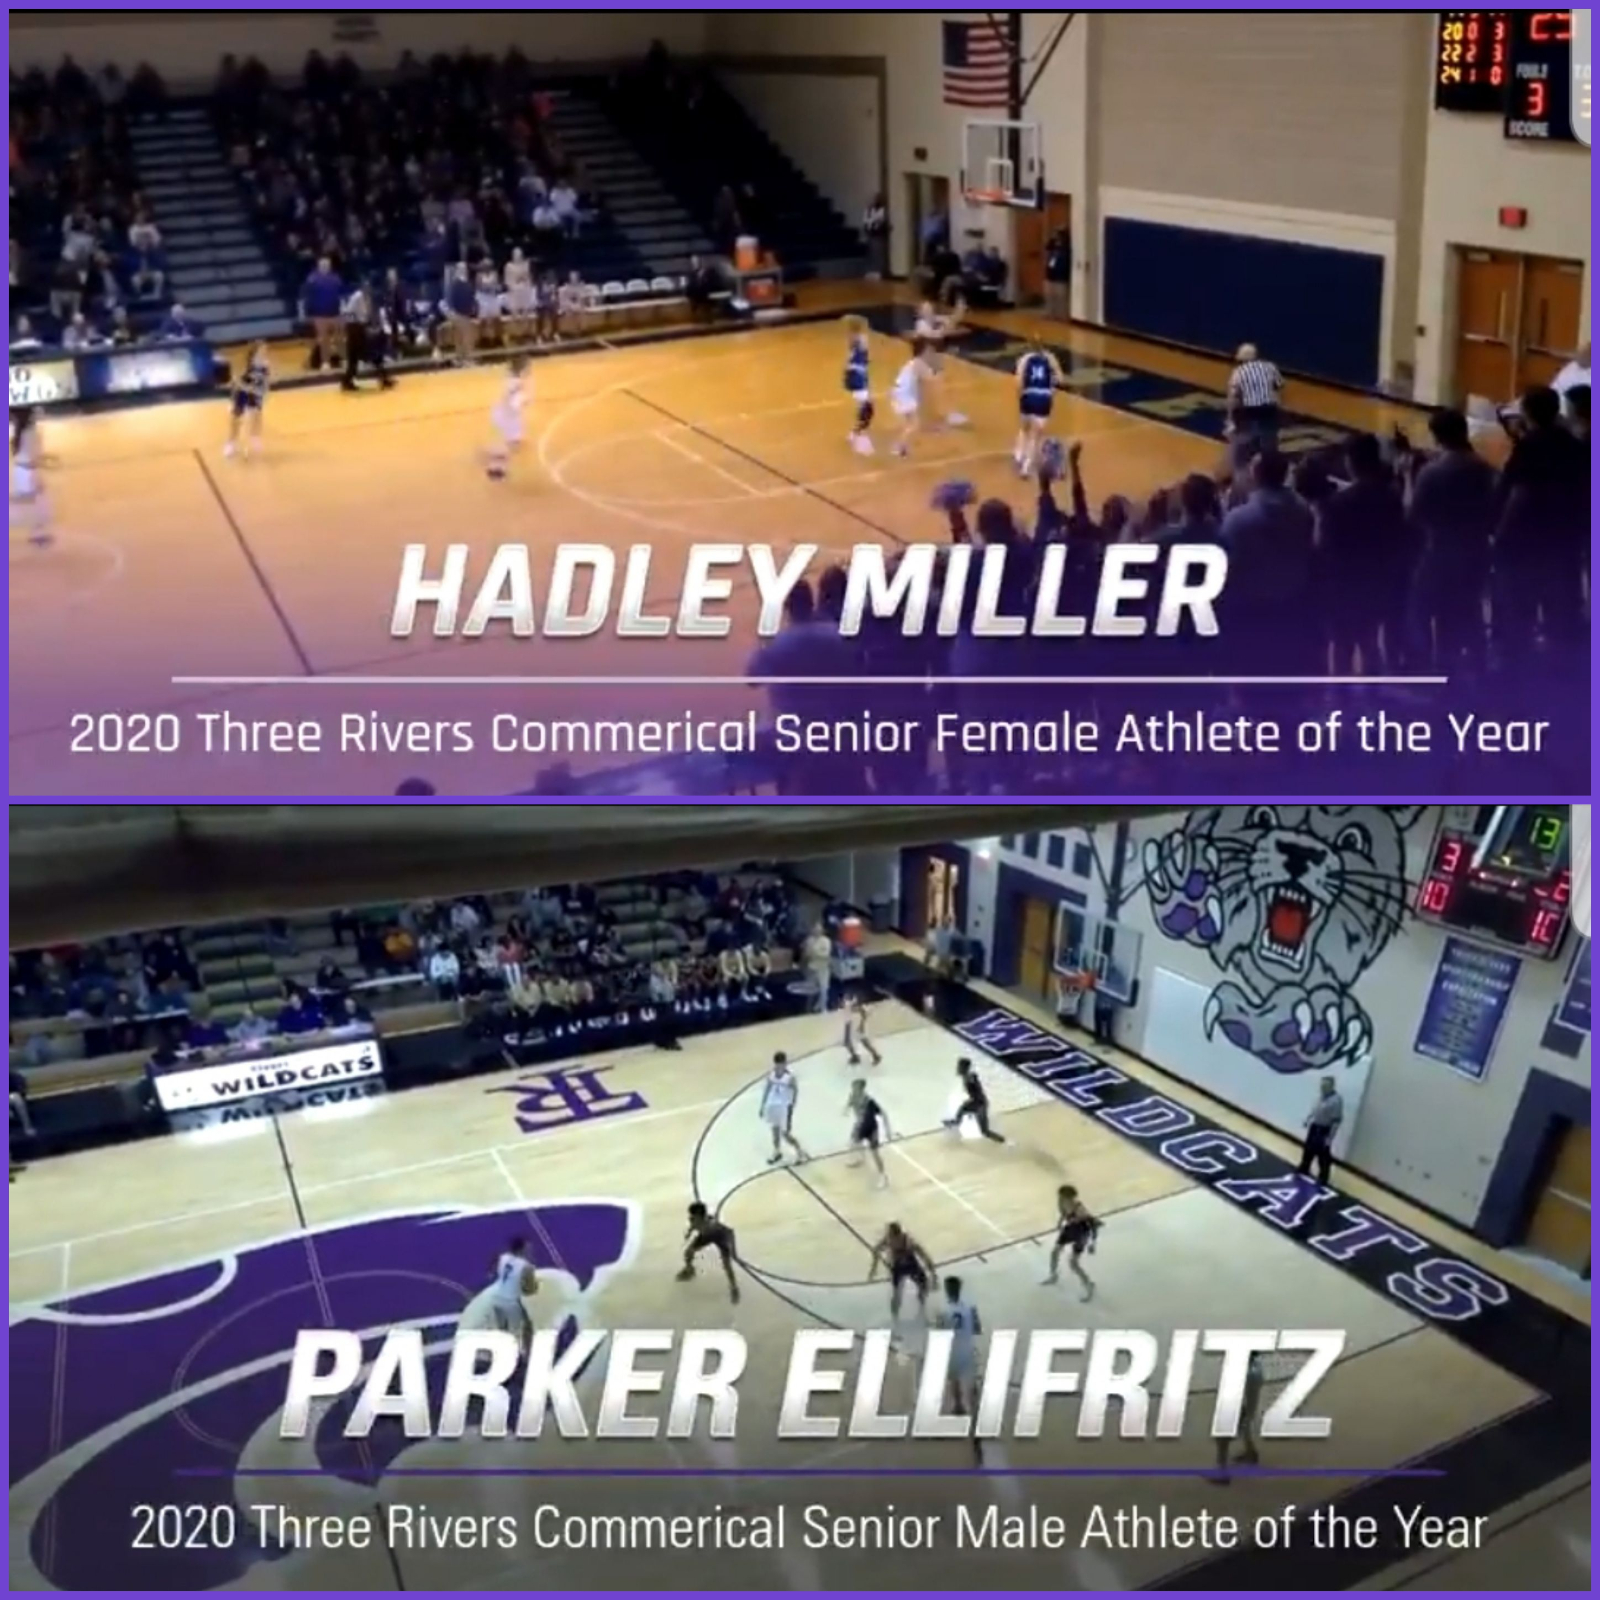 Senior Awards Announced – Ellifritz & Miller named Most Outstanding Athletes